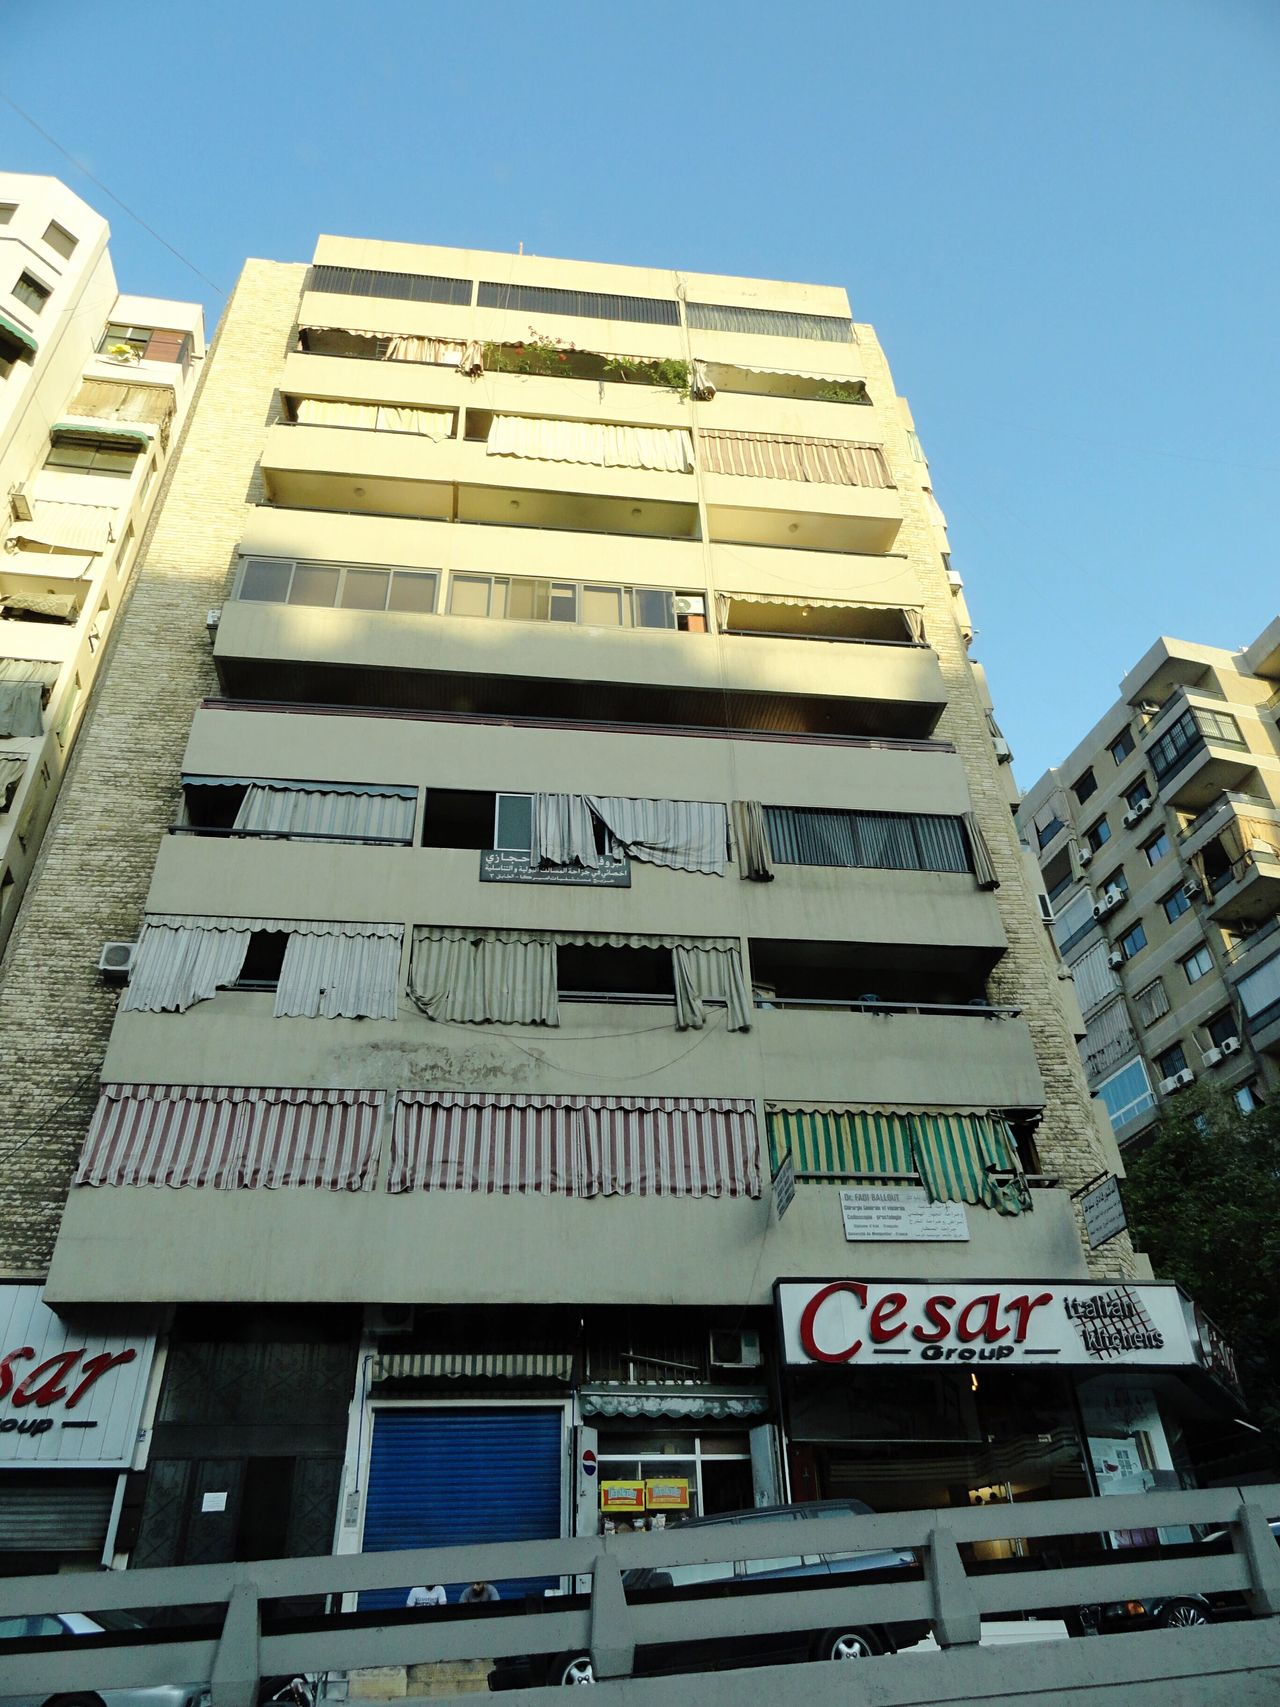 Beirut Lebanon 🇱🇧 Architecture Building Exterior Low Angle View Built Structure Clear Sky Outdoors City No People Day Sky